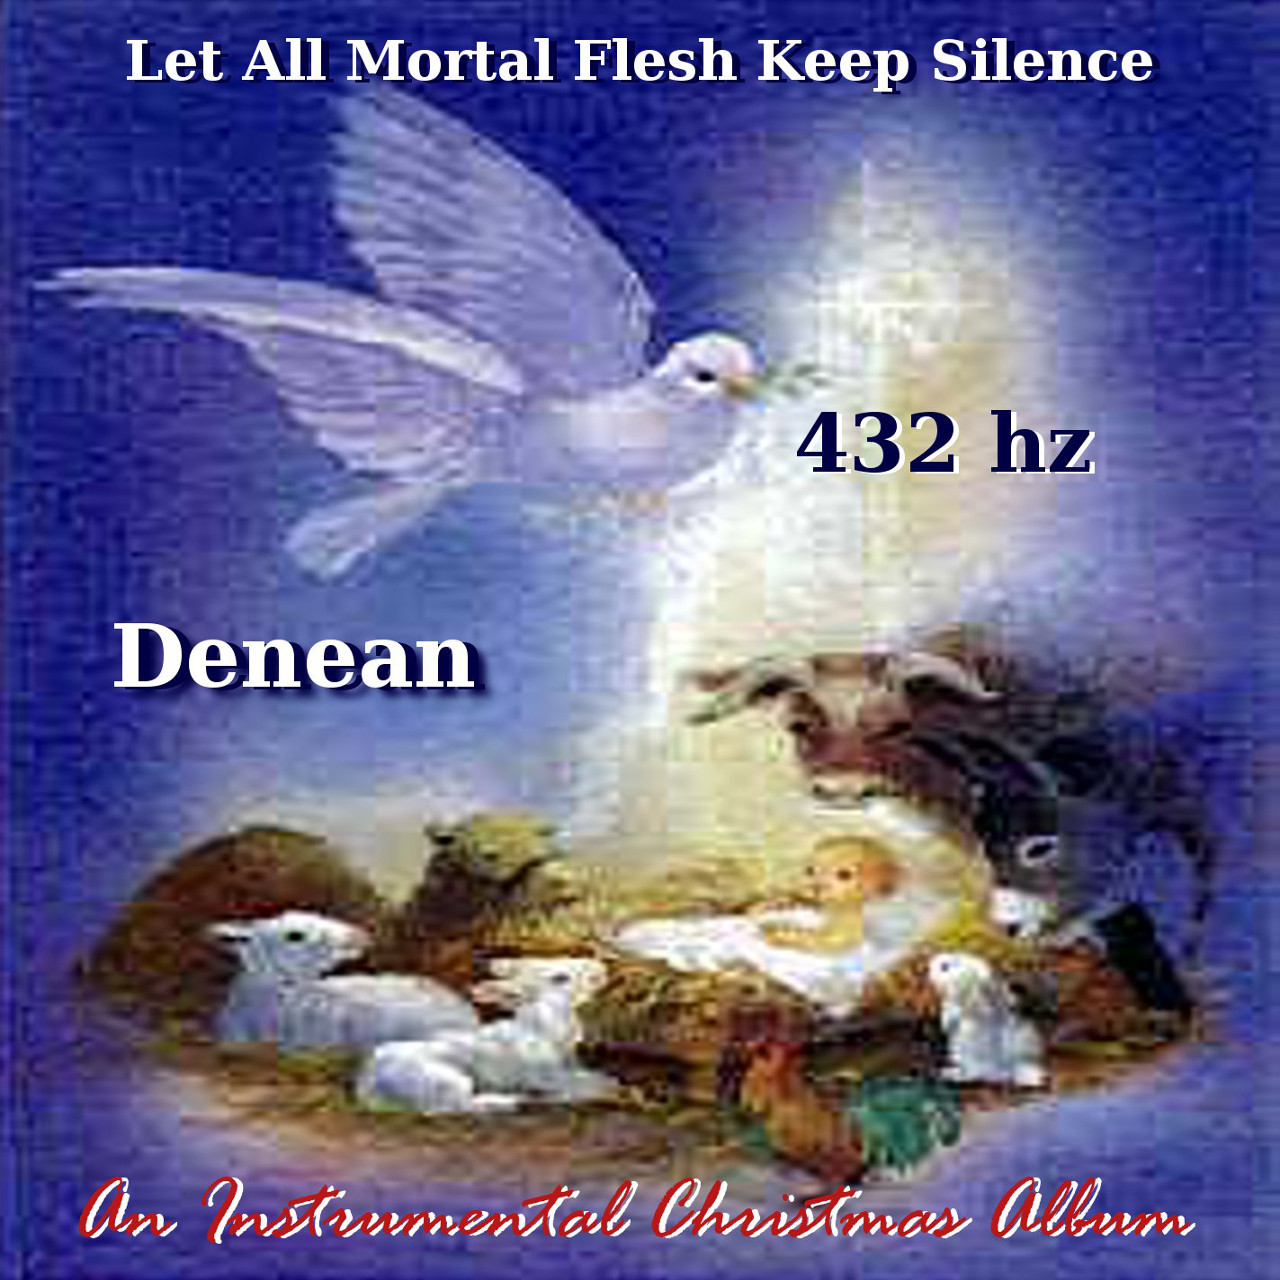 Let All Mortal Flesh Keep Silence - Denean